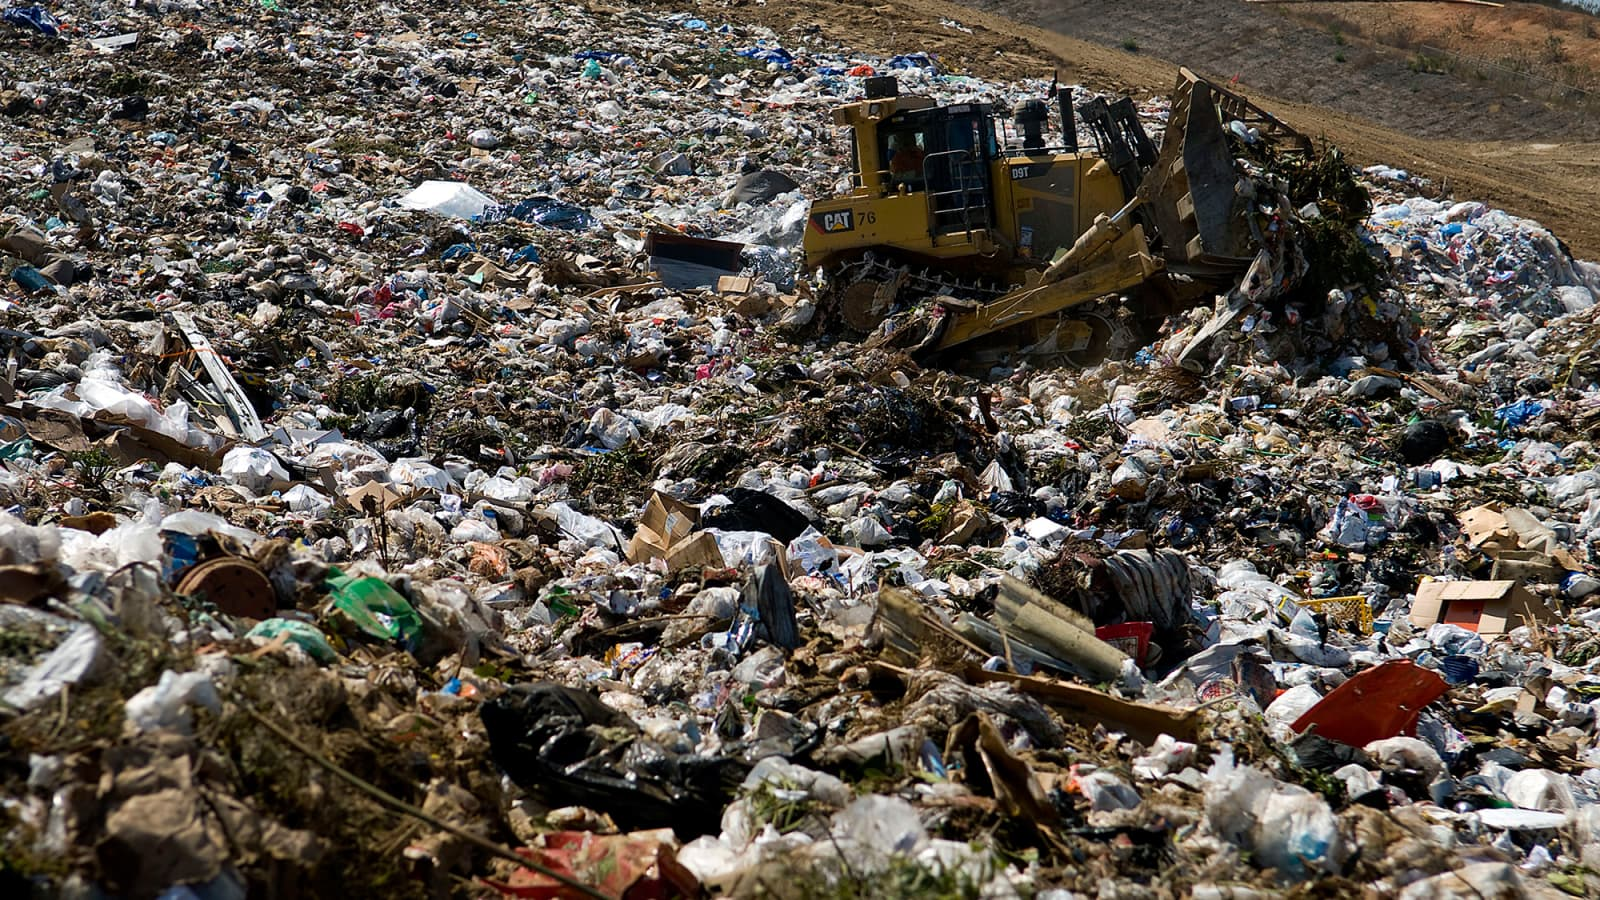 bitcoins worth millions lost in landfill definition